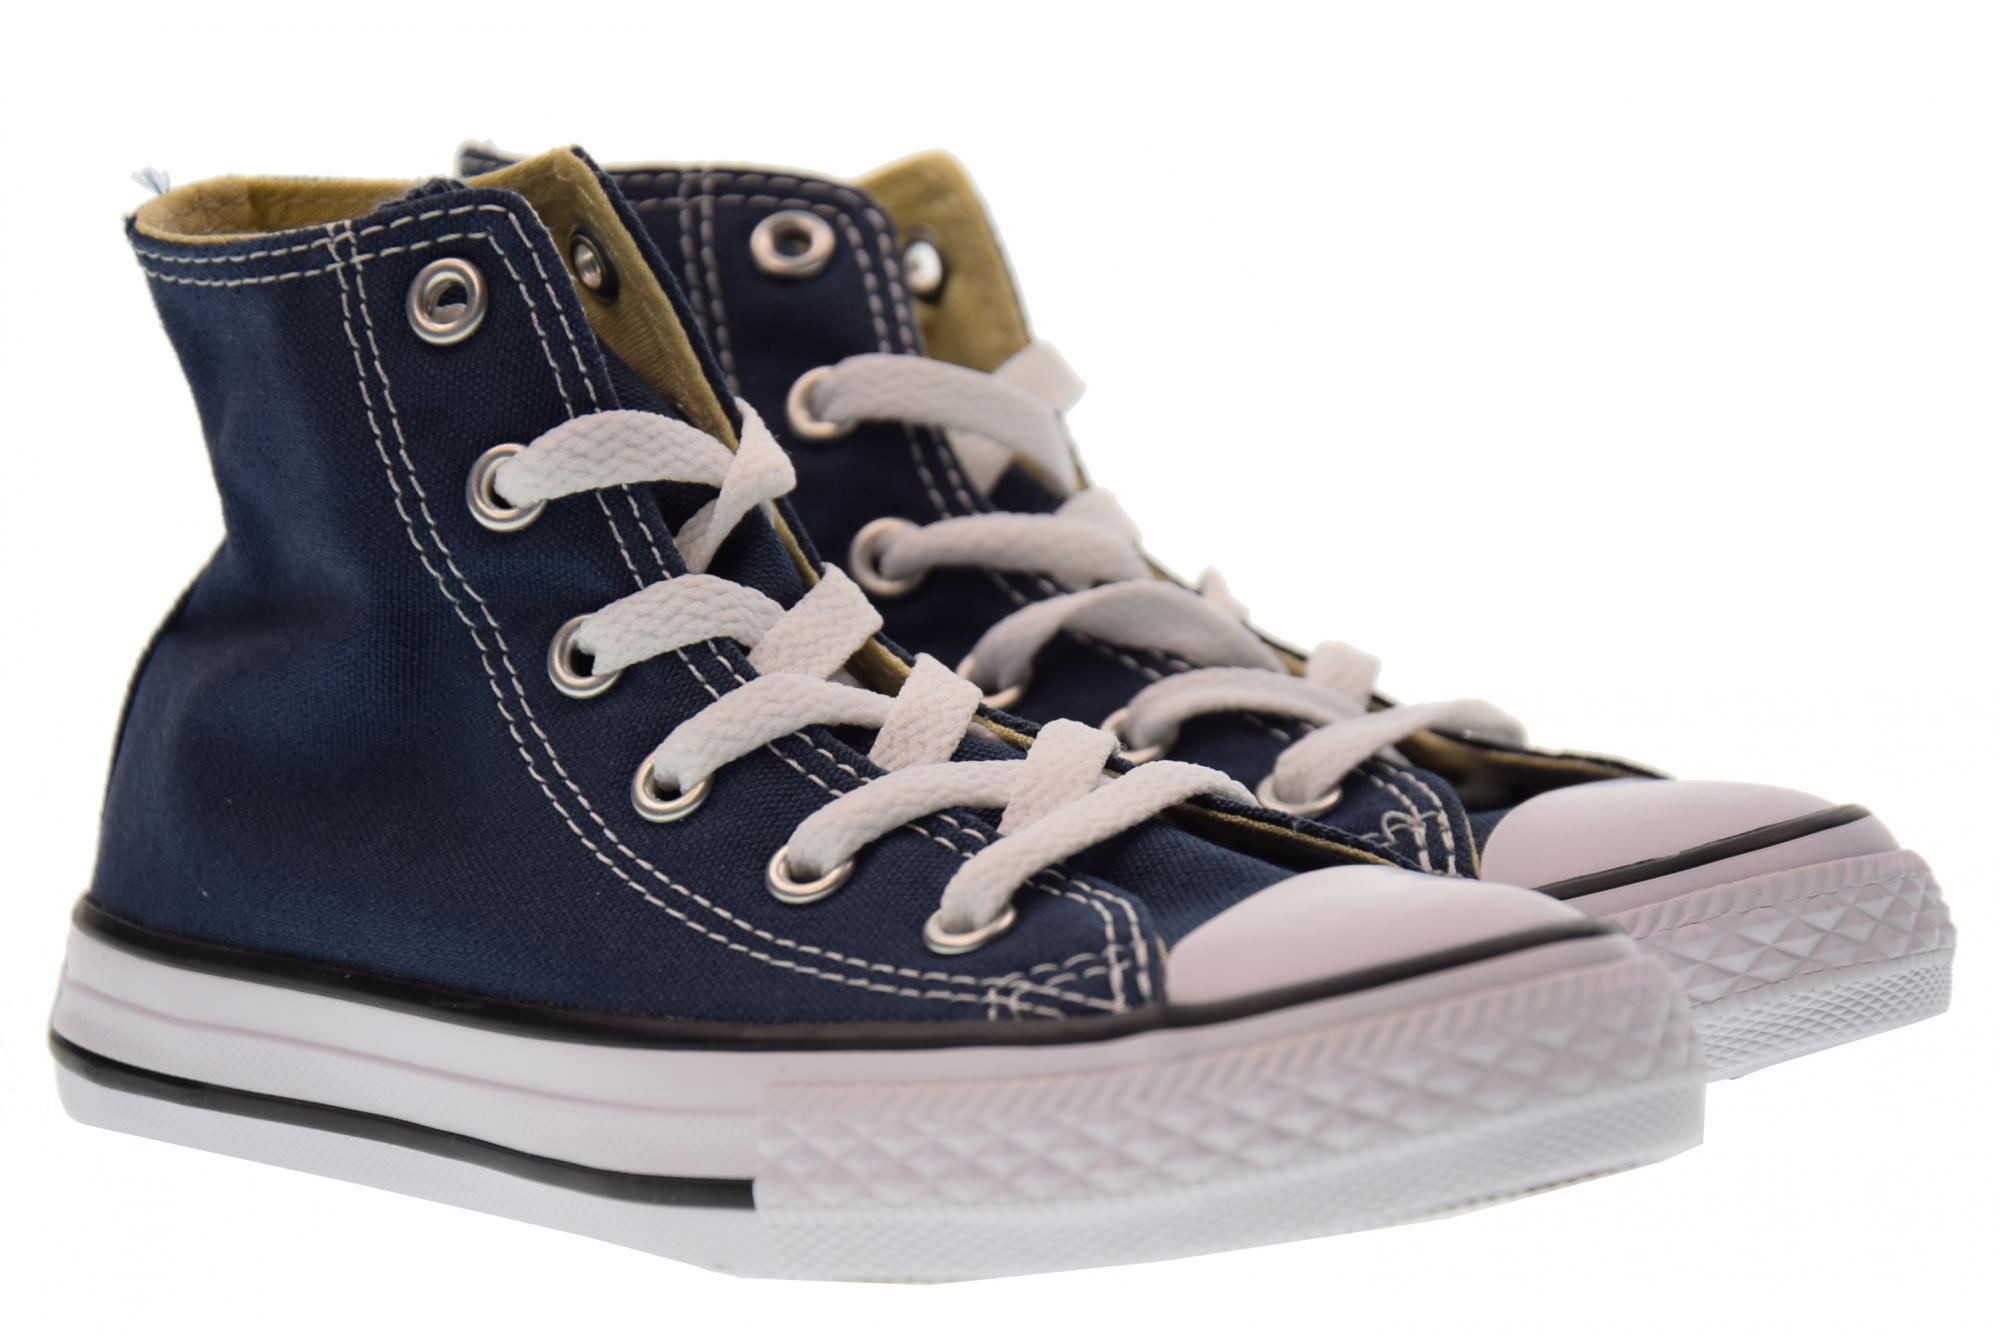 best service aeb55 be9cf Details about Converse P18u baby shoes / or high sneakers 3J233C YTHS C / T  ALLSTAR HI BLU